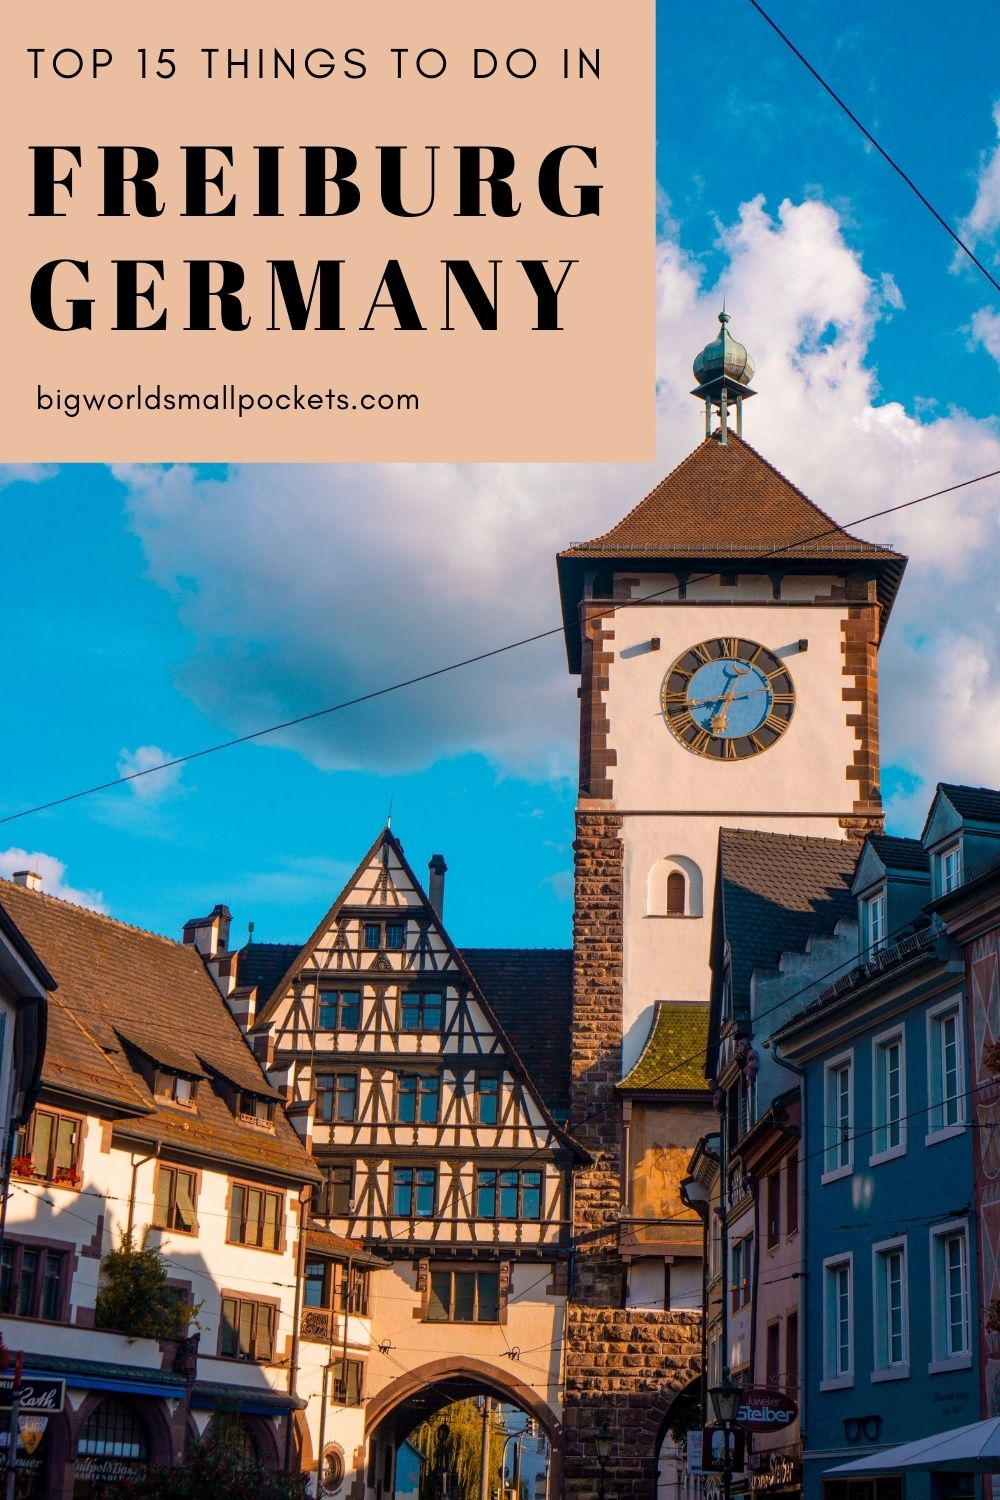 The Top Things to Do in Freiburg, Germany